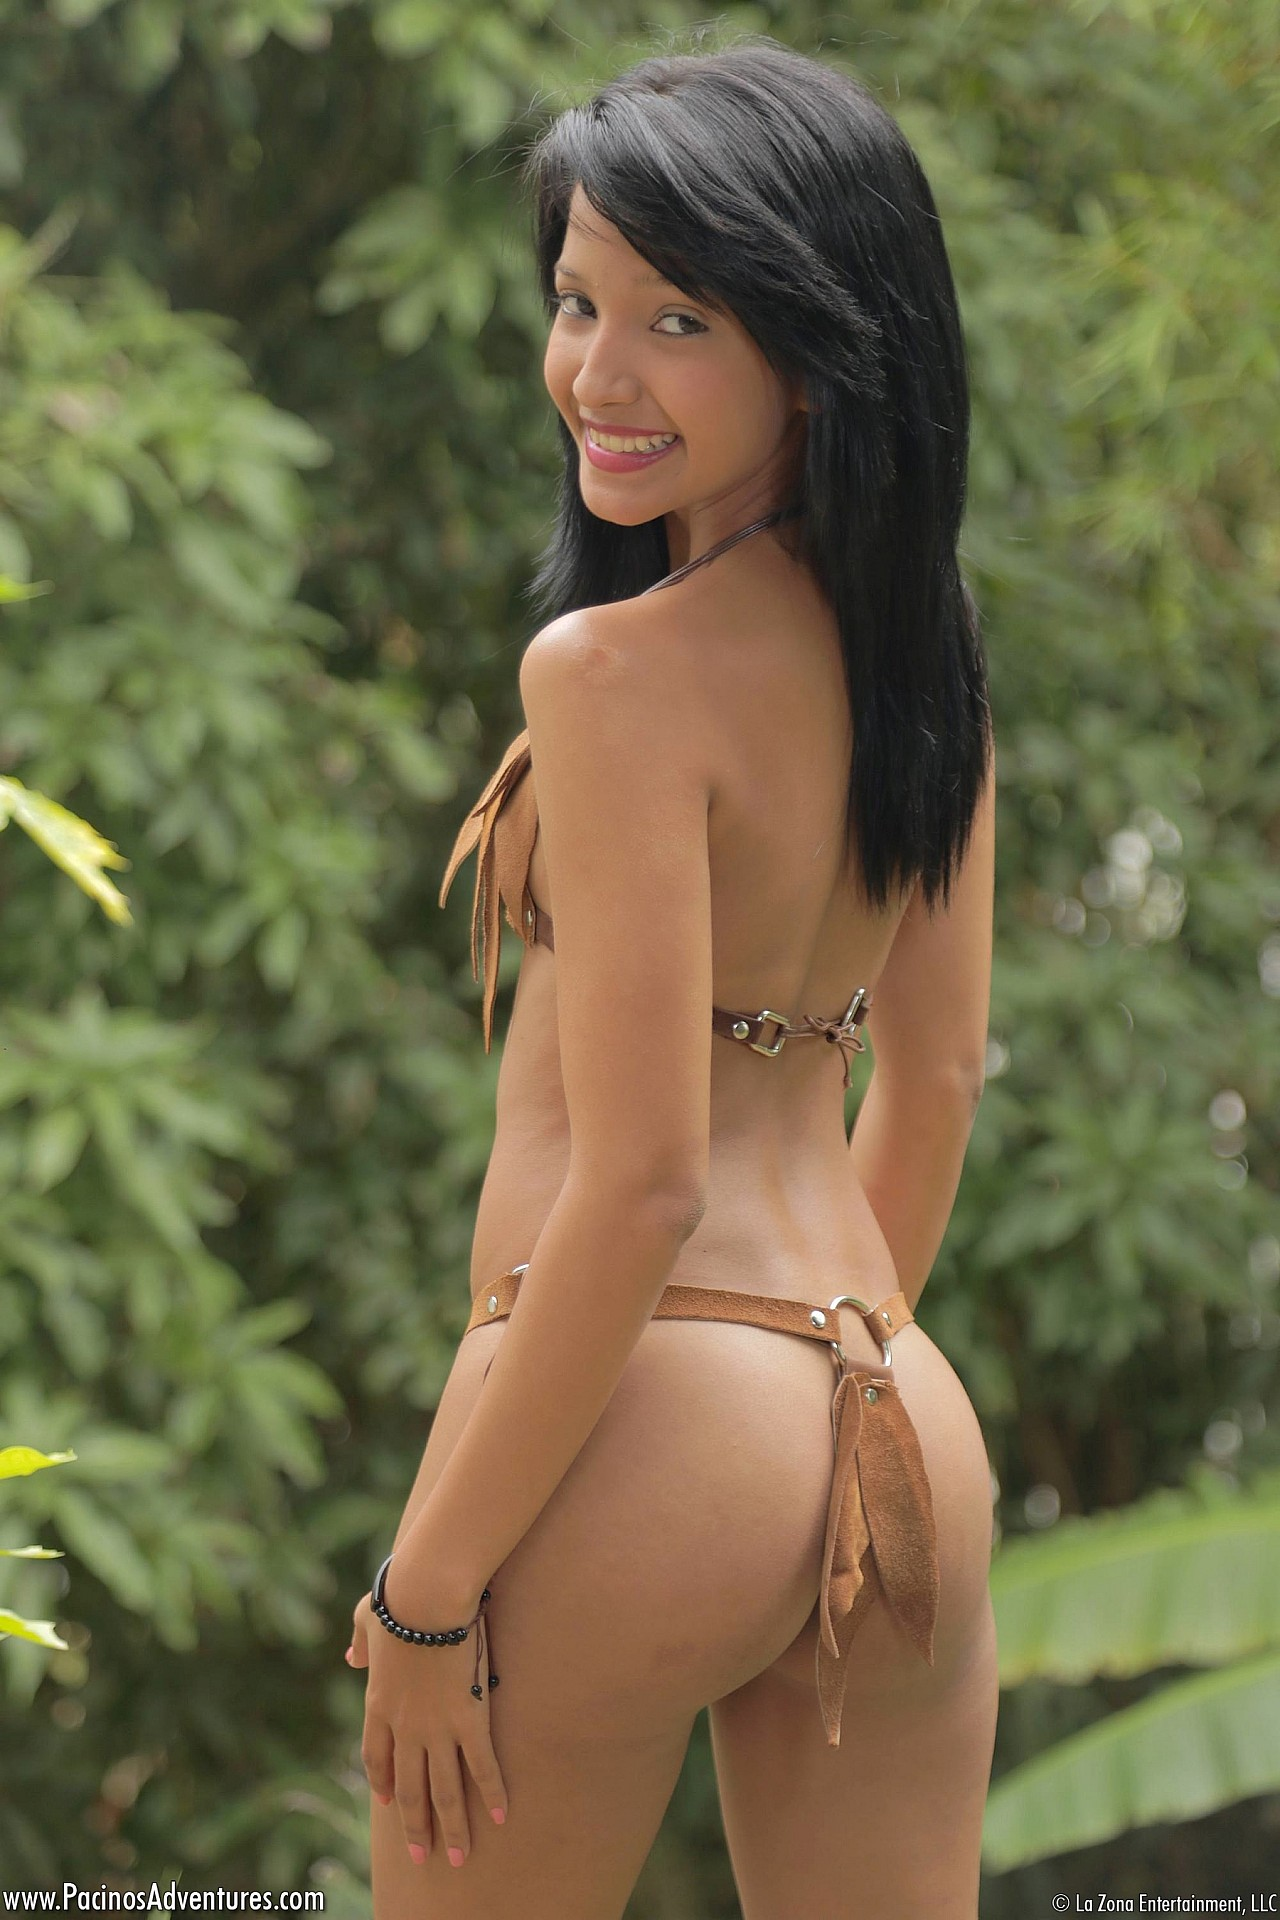 Skinny nude girl hot latina